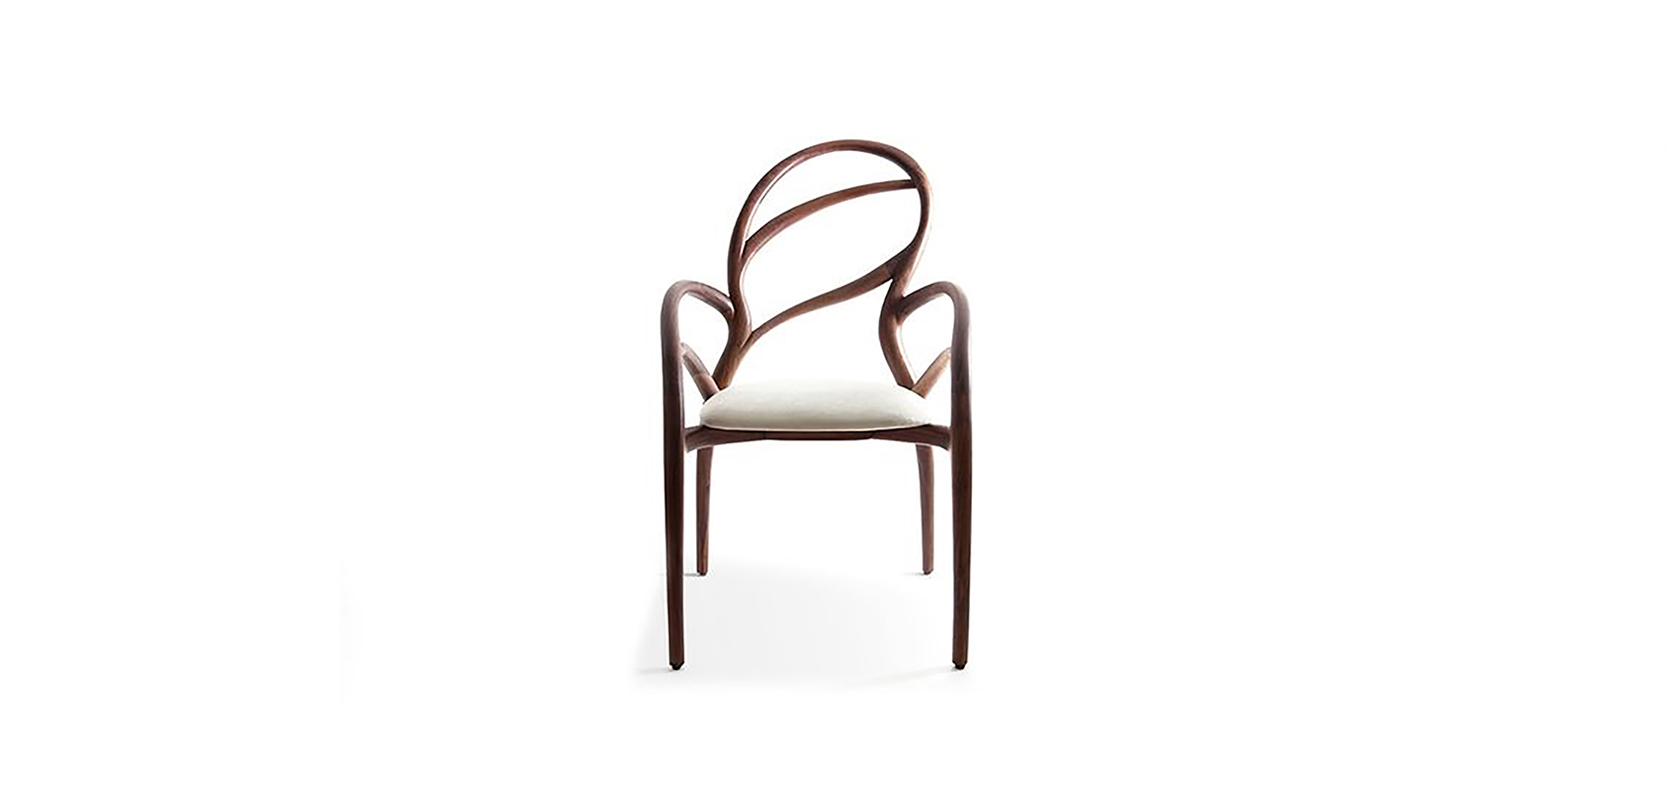 ANGELA CHAIR「LIMITED EDITION」 BRAND:  FRANK CHOU  WEB:  www.frankchou.com Angela chair keeps the normal shape of a chair, but is a limited edition art design work with fine craftsmanship of walnut. The chair was auctioned off in 2012 and 2014.